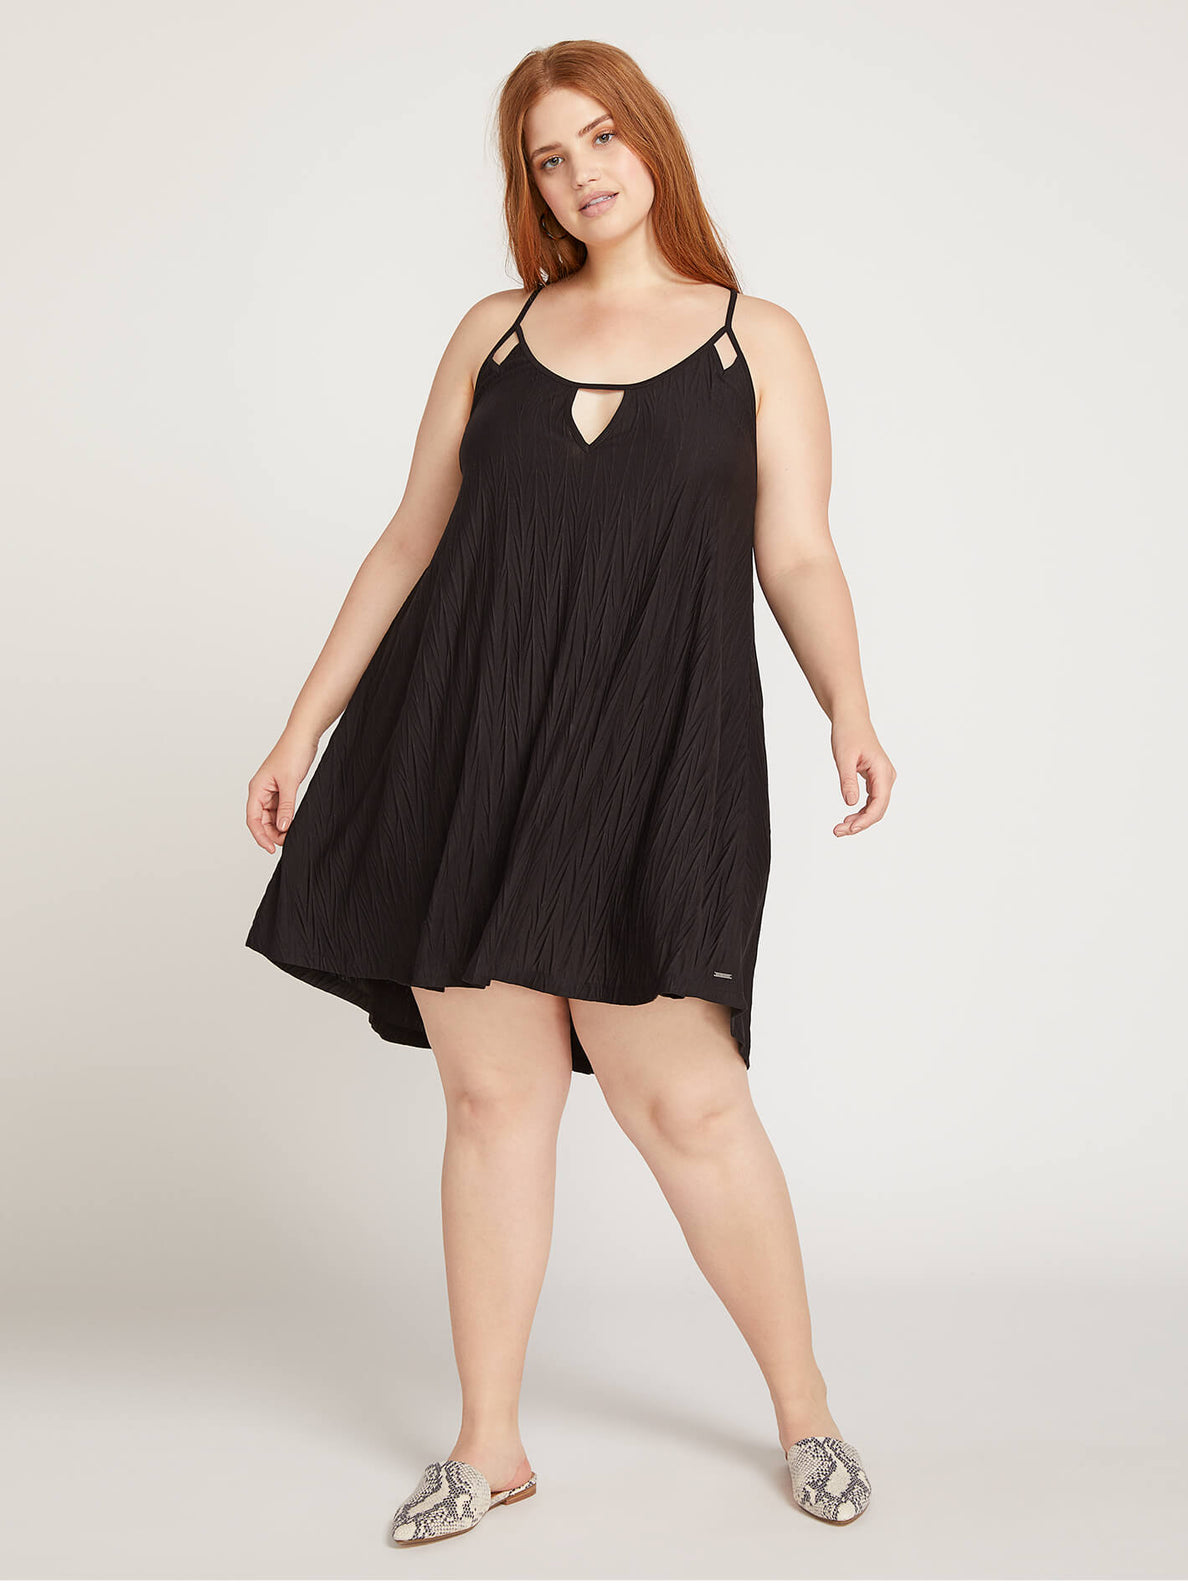 Back 2 Mentality Dress In Black, Front Plus Size View